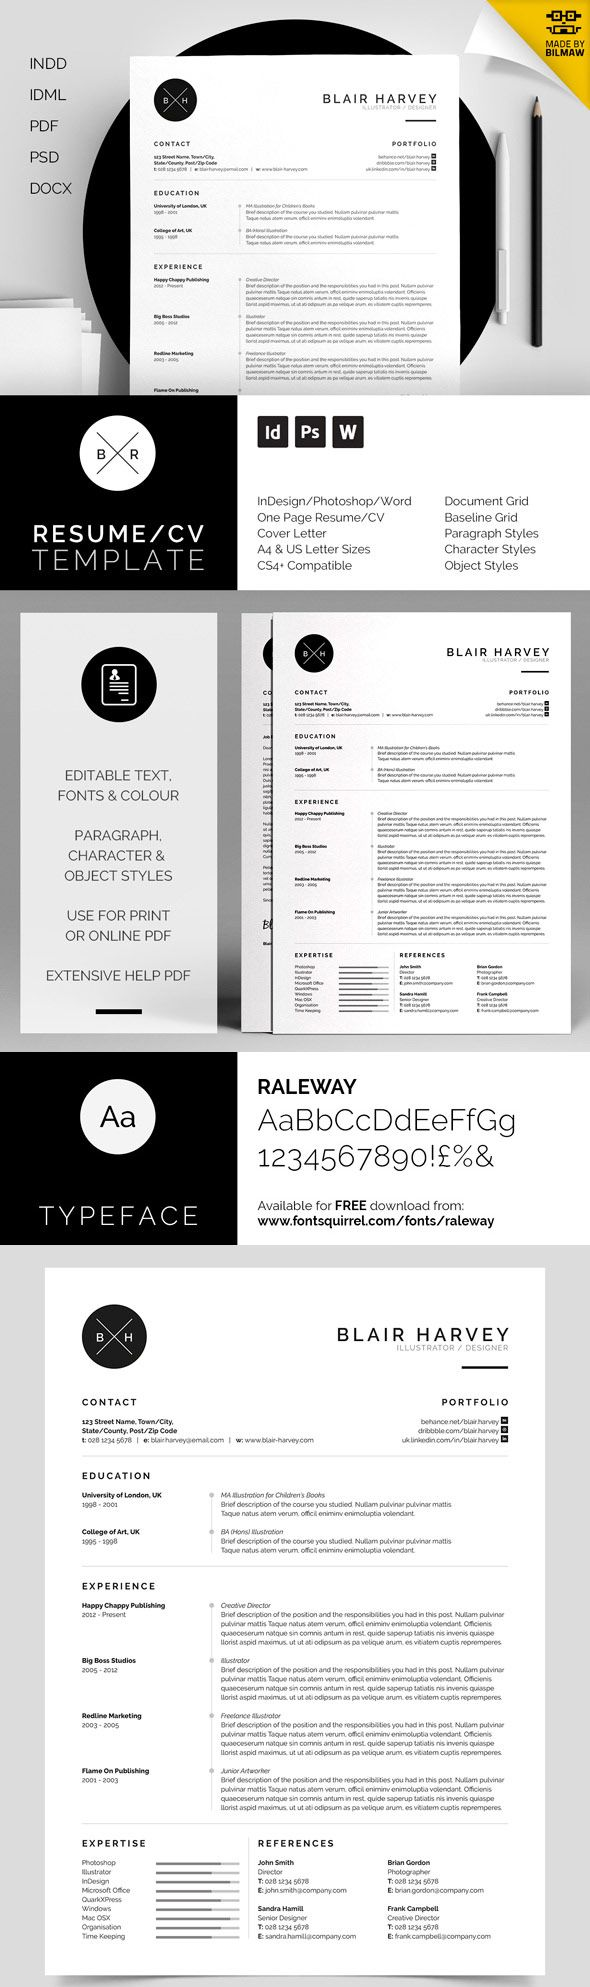 49 Best Resume Design Ideas Images On Pinterest Resume Design